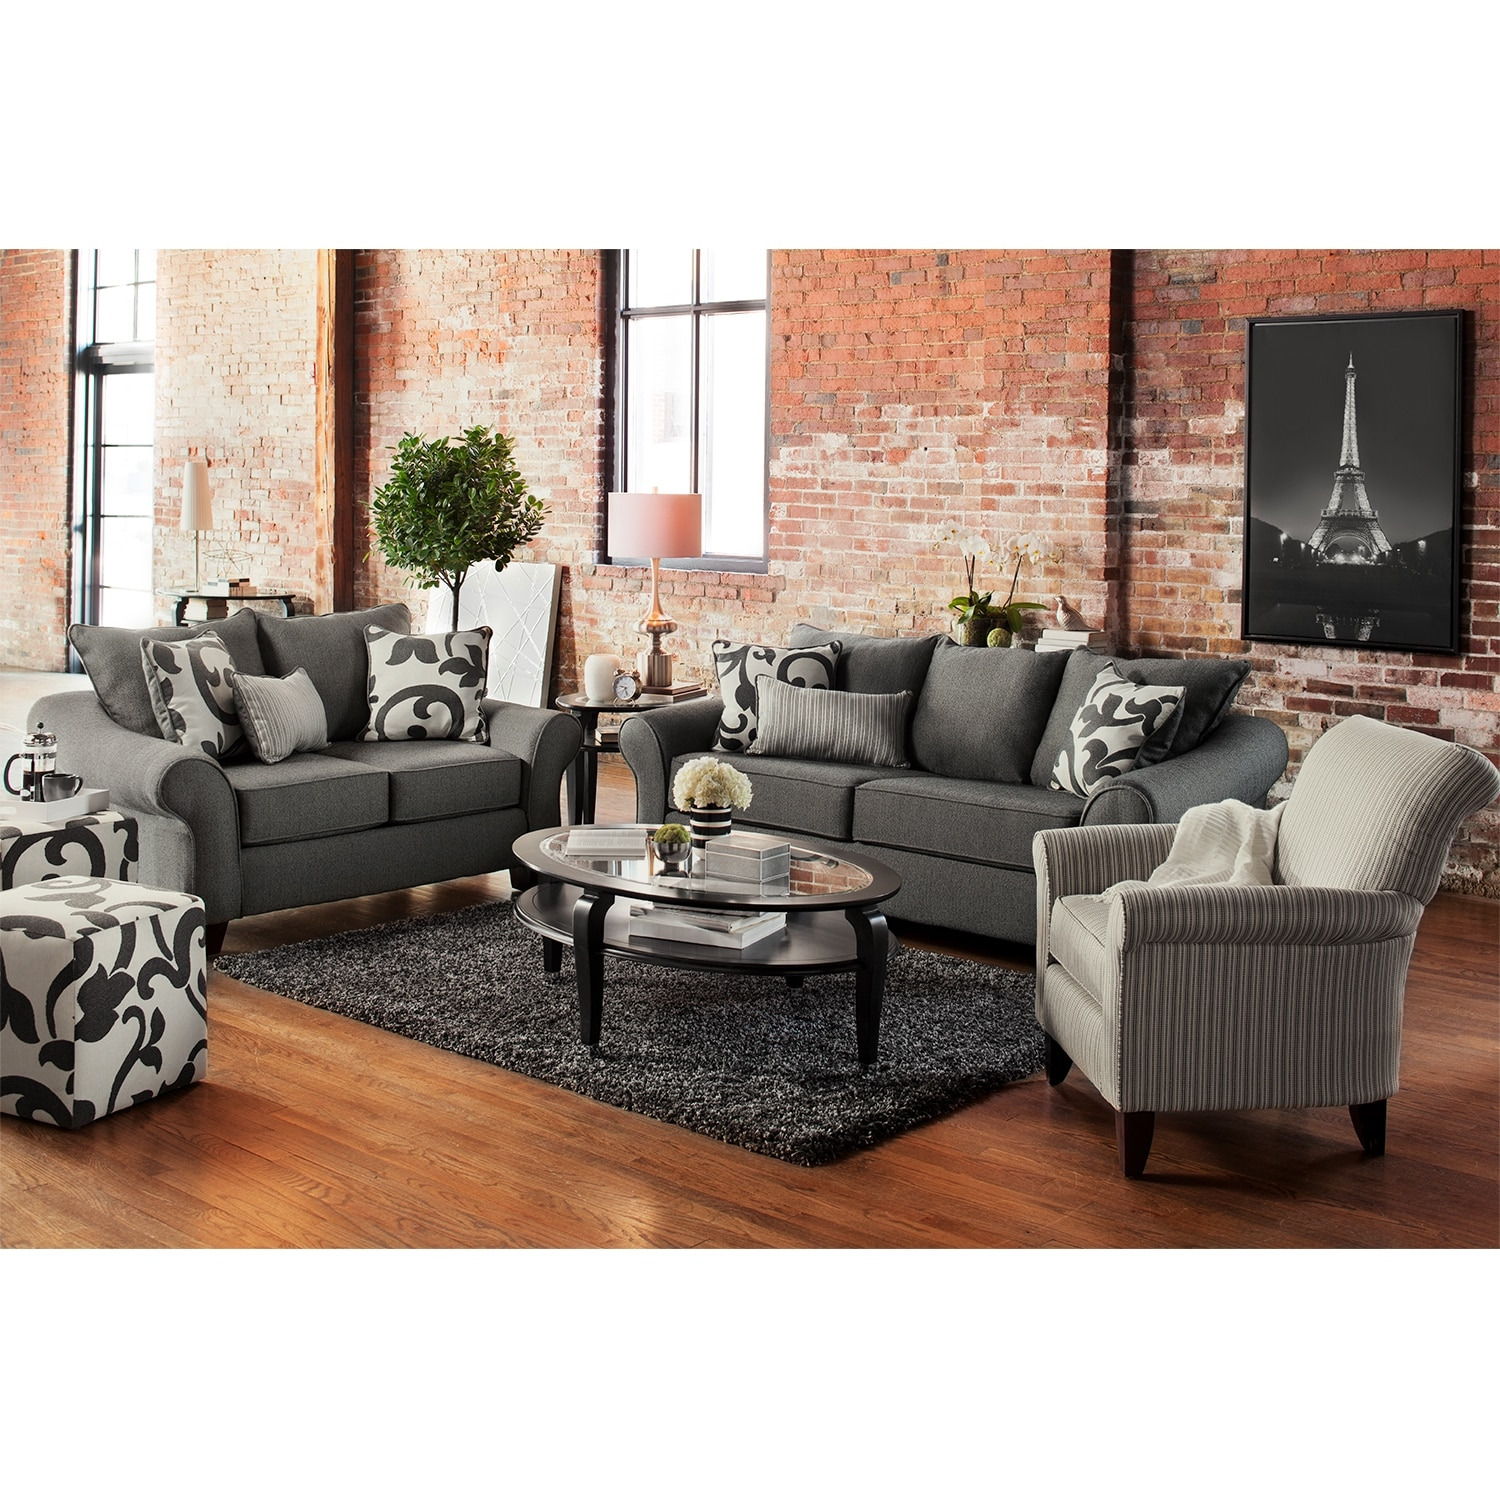 Colette Sofa Loveseat And Accent Chair Set Gray American Signature Furniture